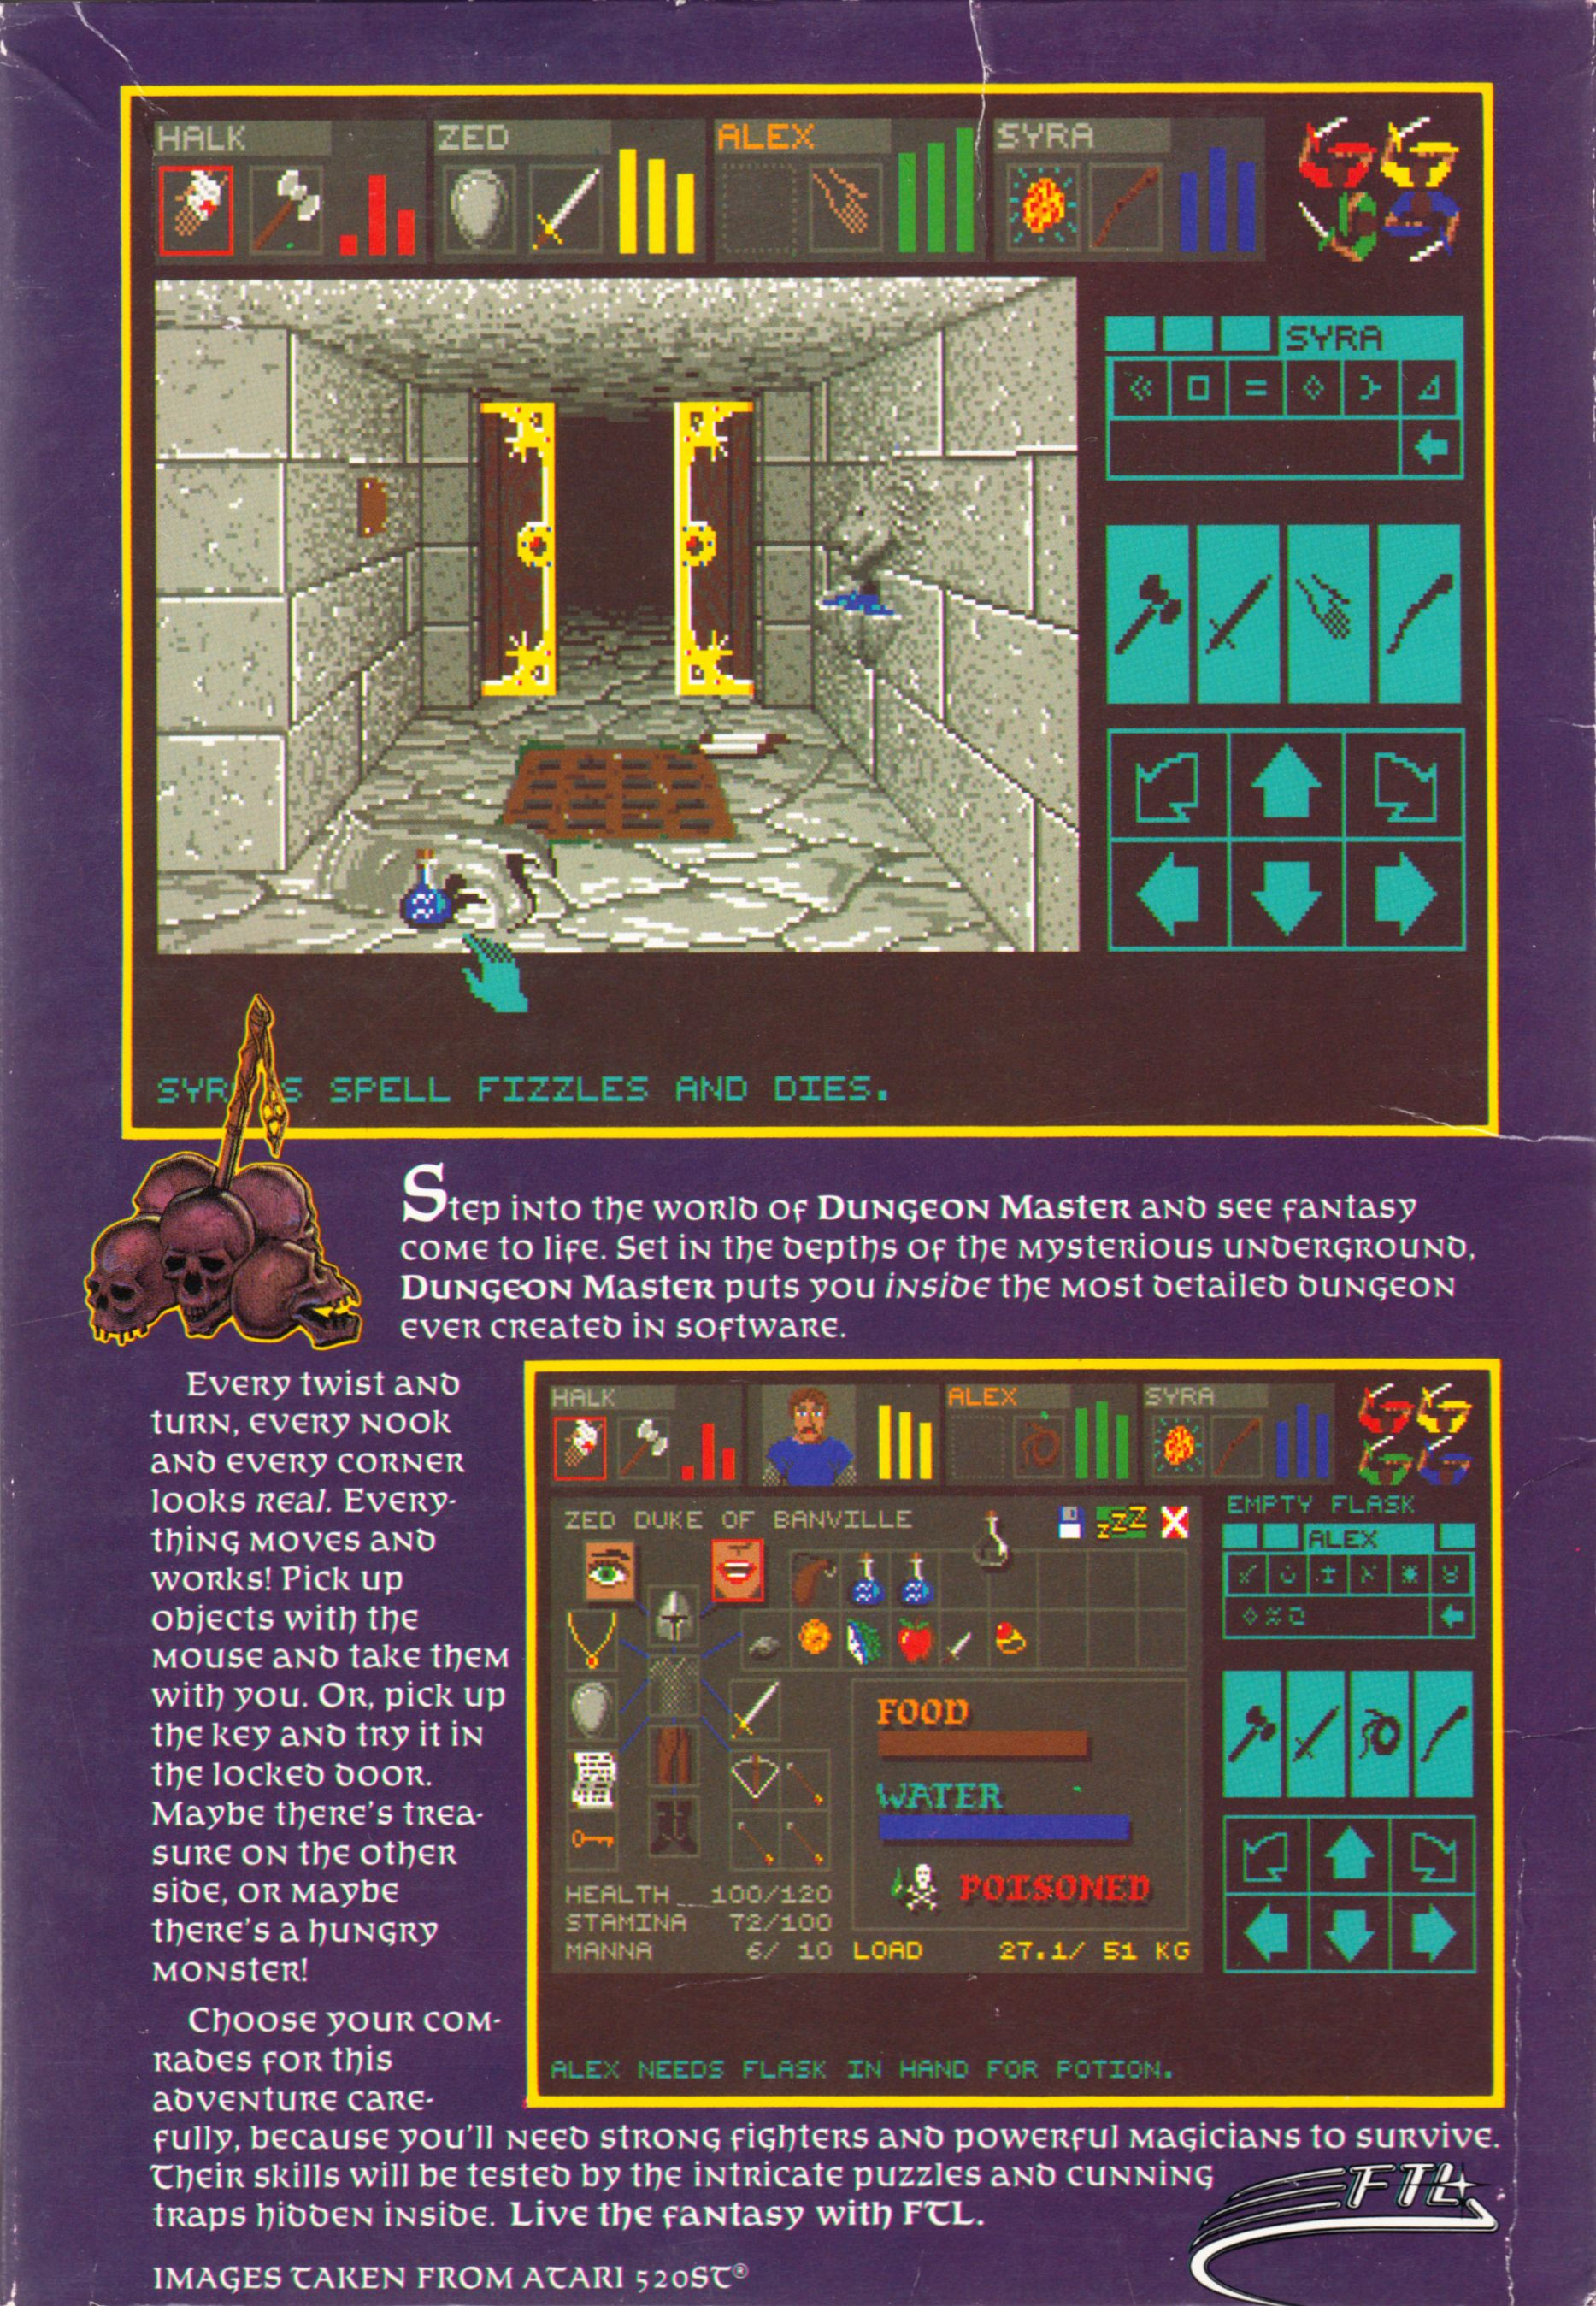 Game - Dungeon Master - US - Apple IIGS - Box - Back - Scan